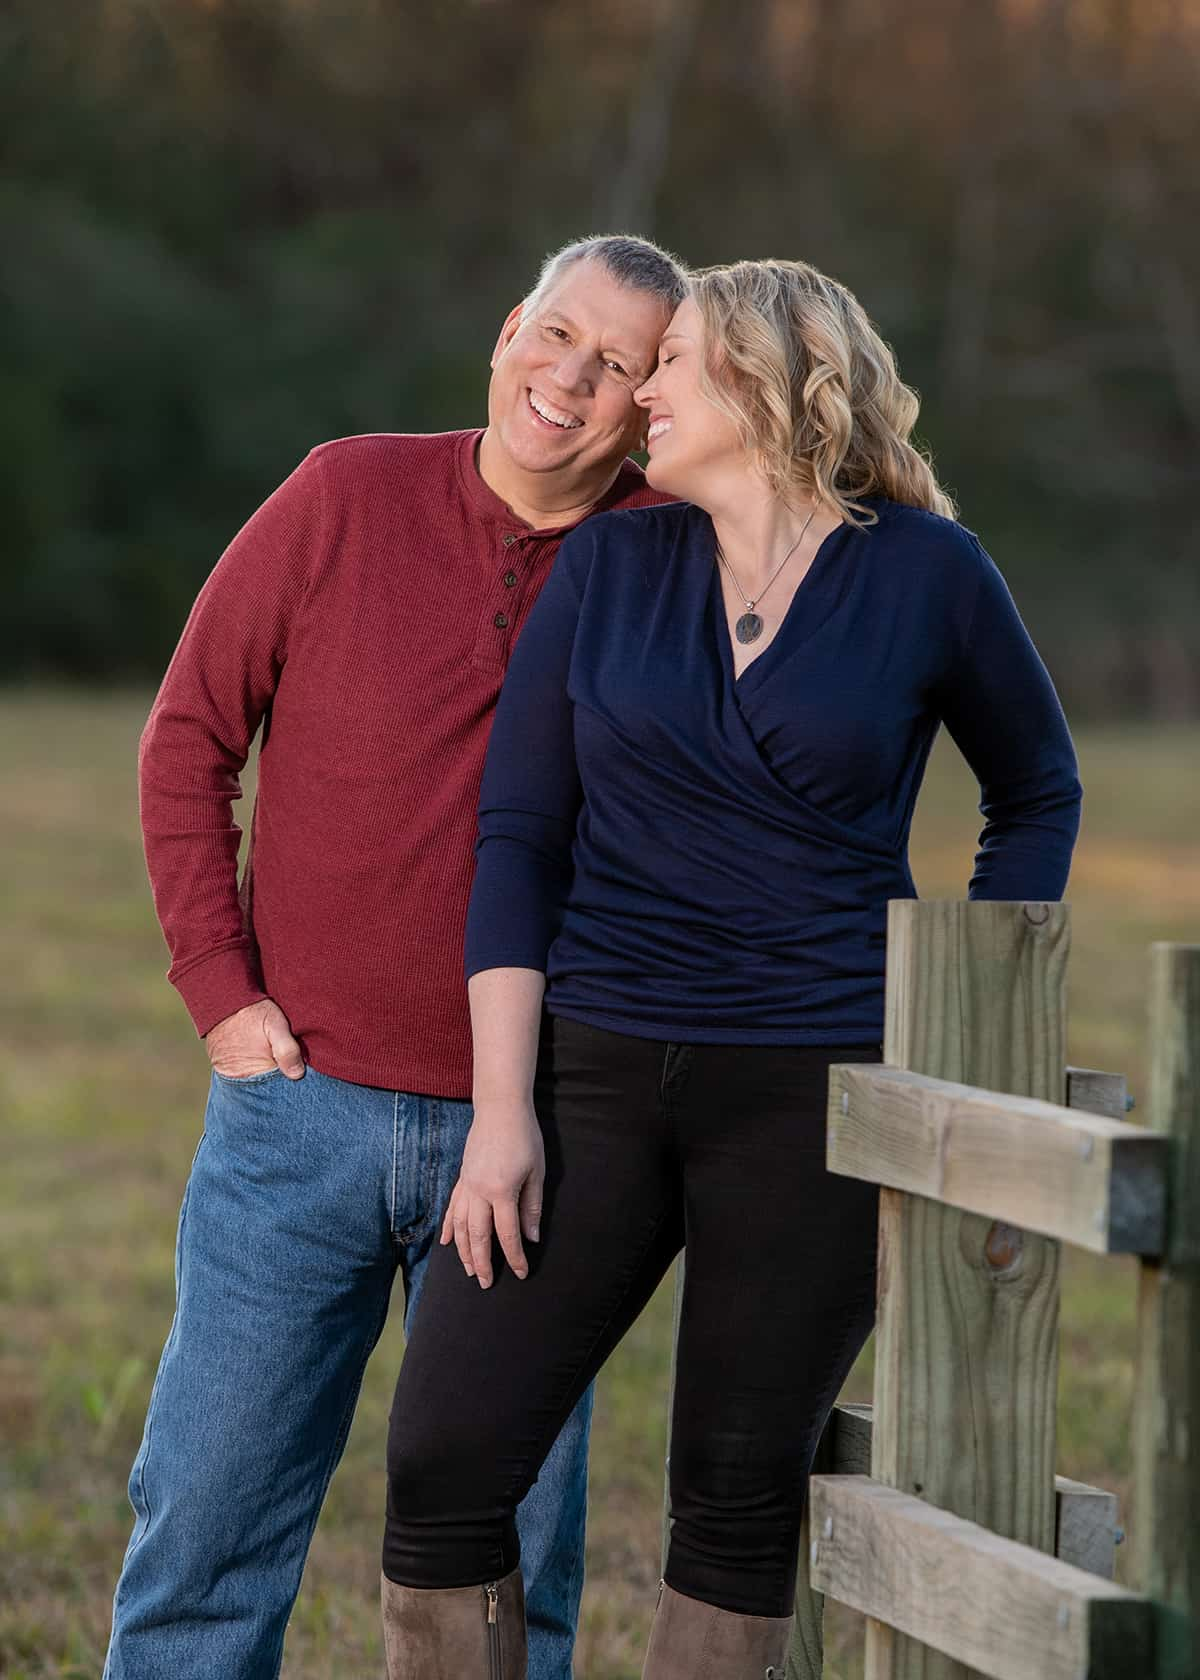 Couple in the park photoshoot celebrating 30 years of marriage